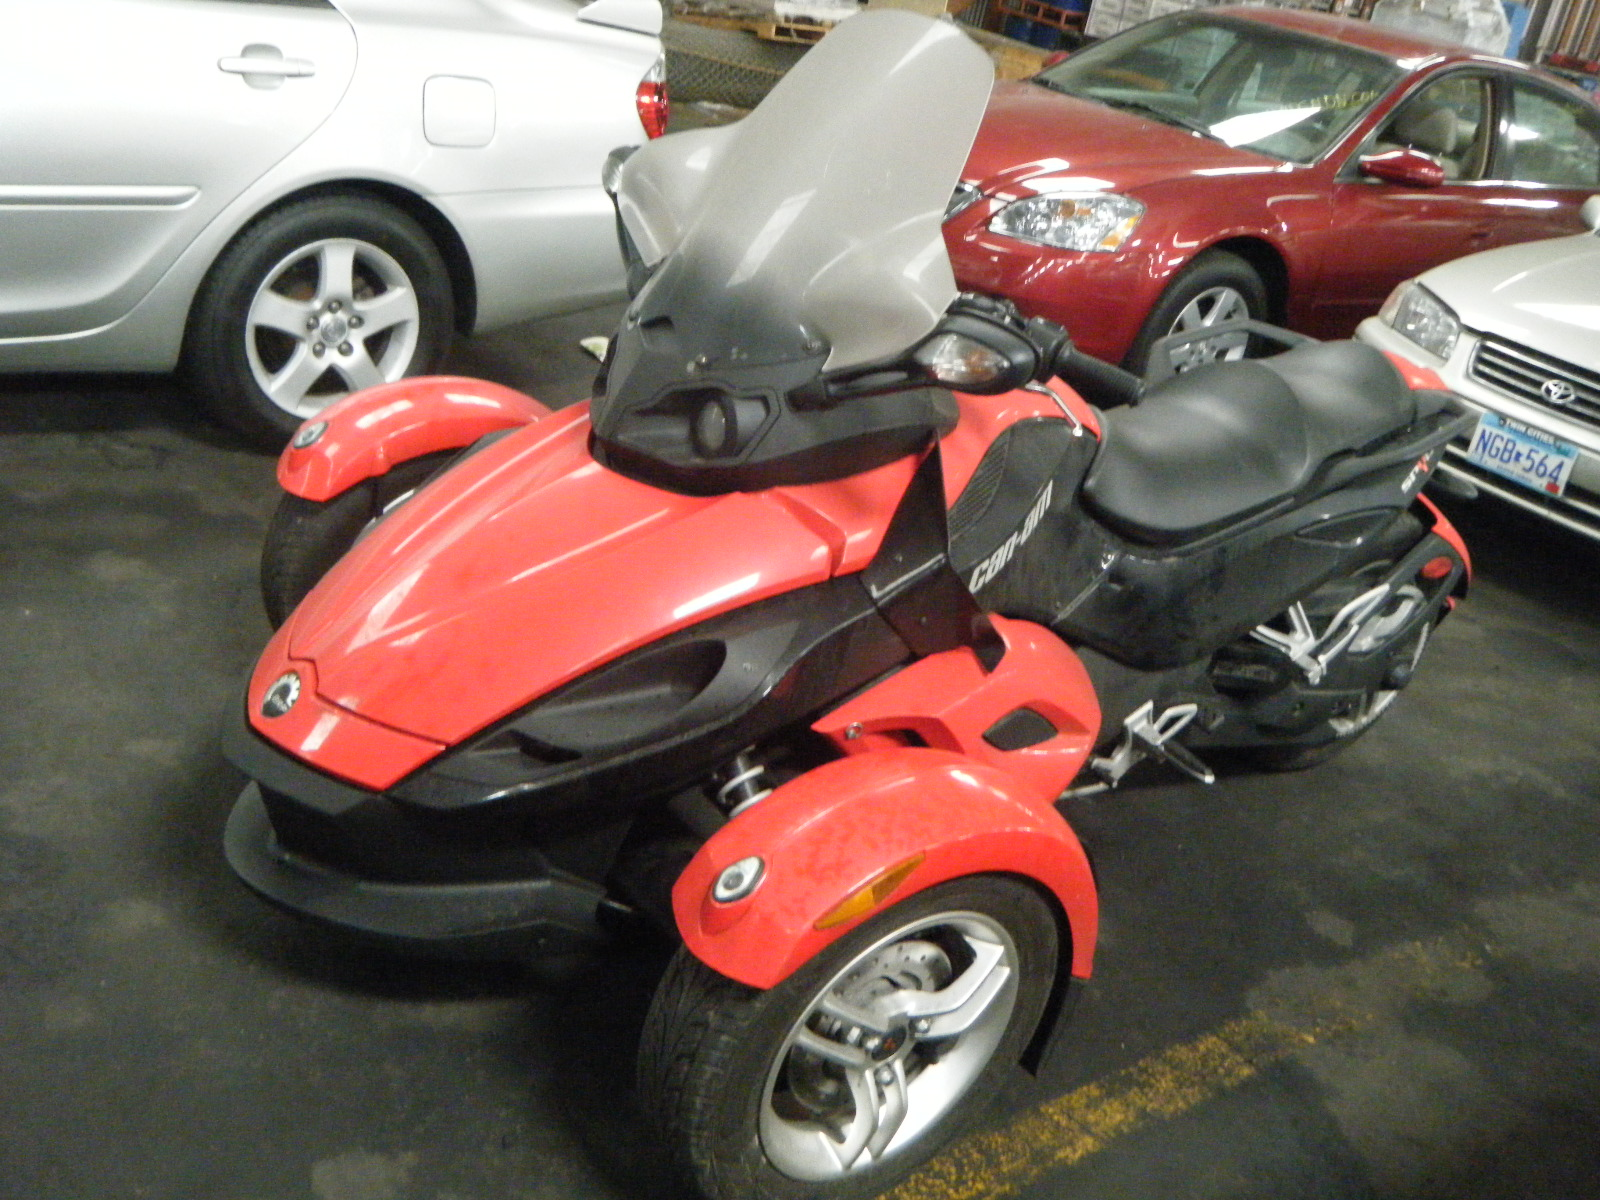 offers used car for sale 2009 can am spyder motorcycle 12. Black Bedroom Furniture Sets. Home Design Ideas